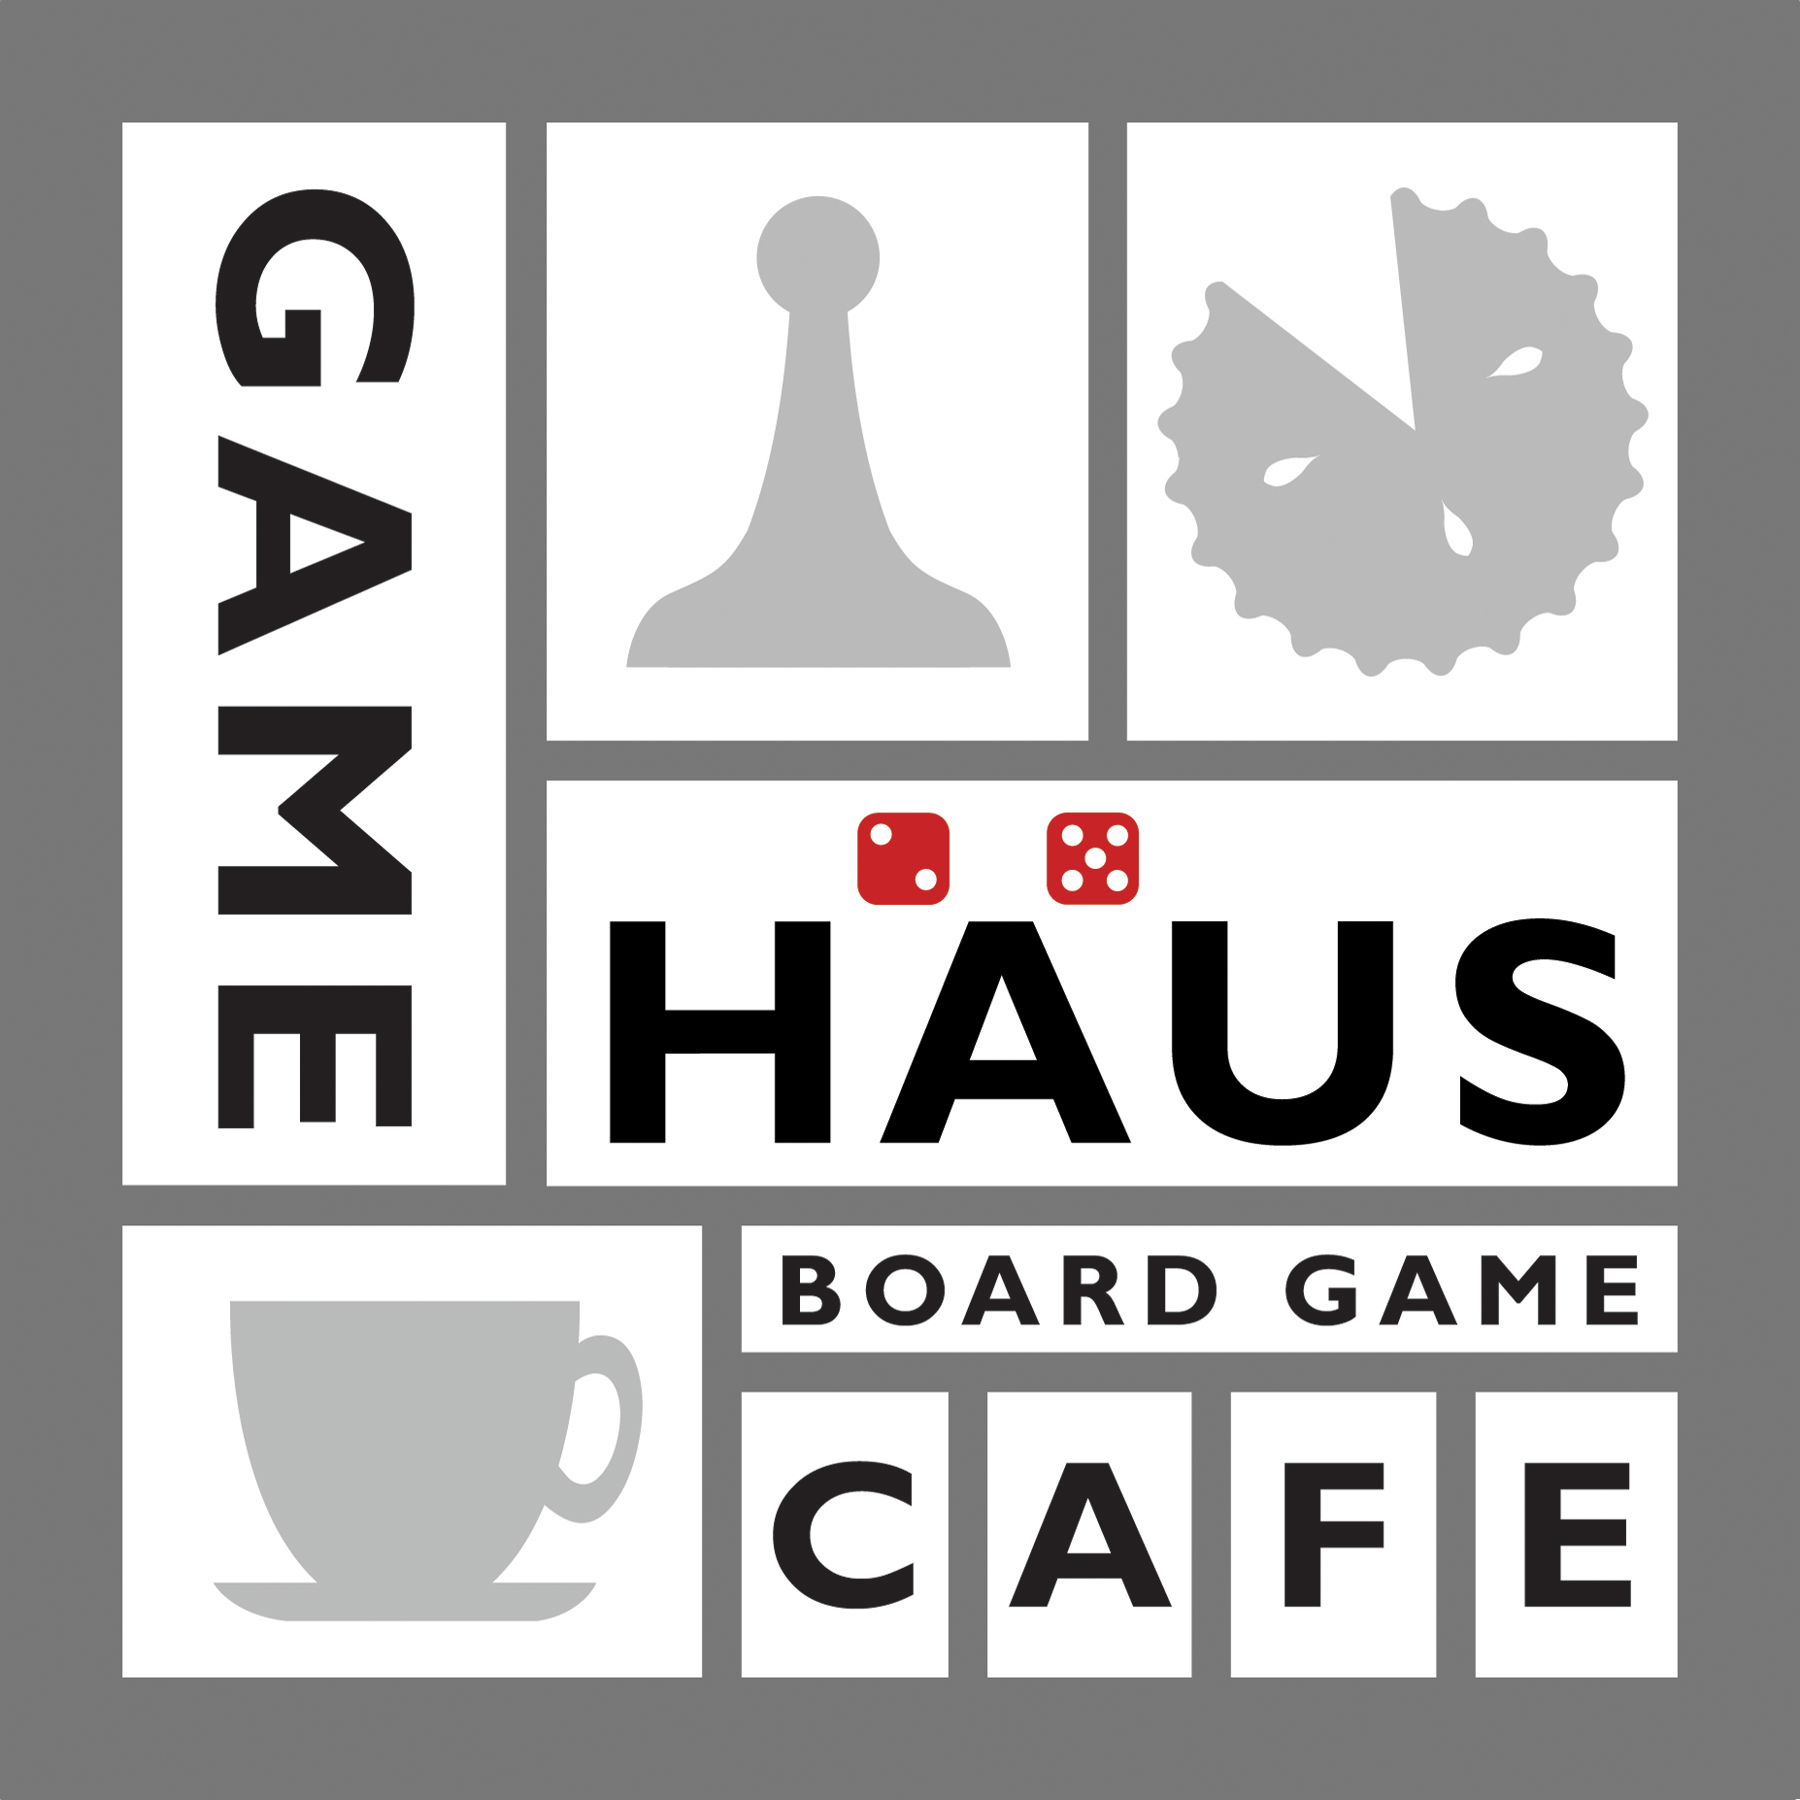 Game Haus Cafe